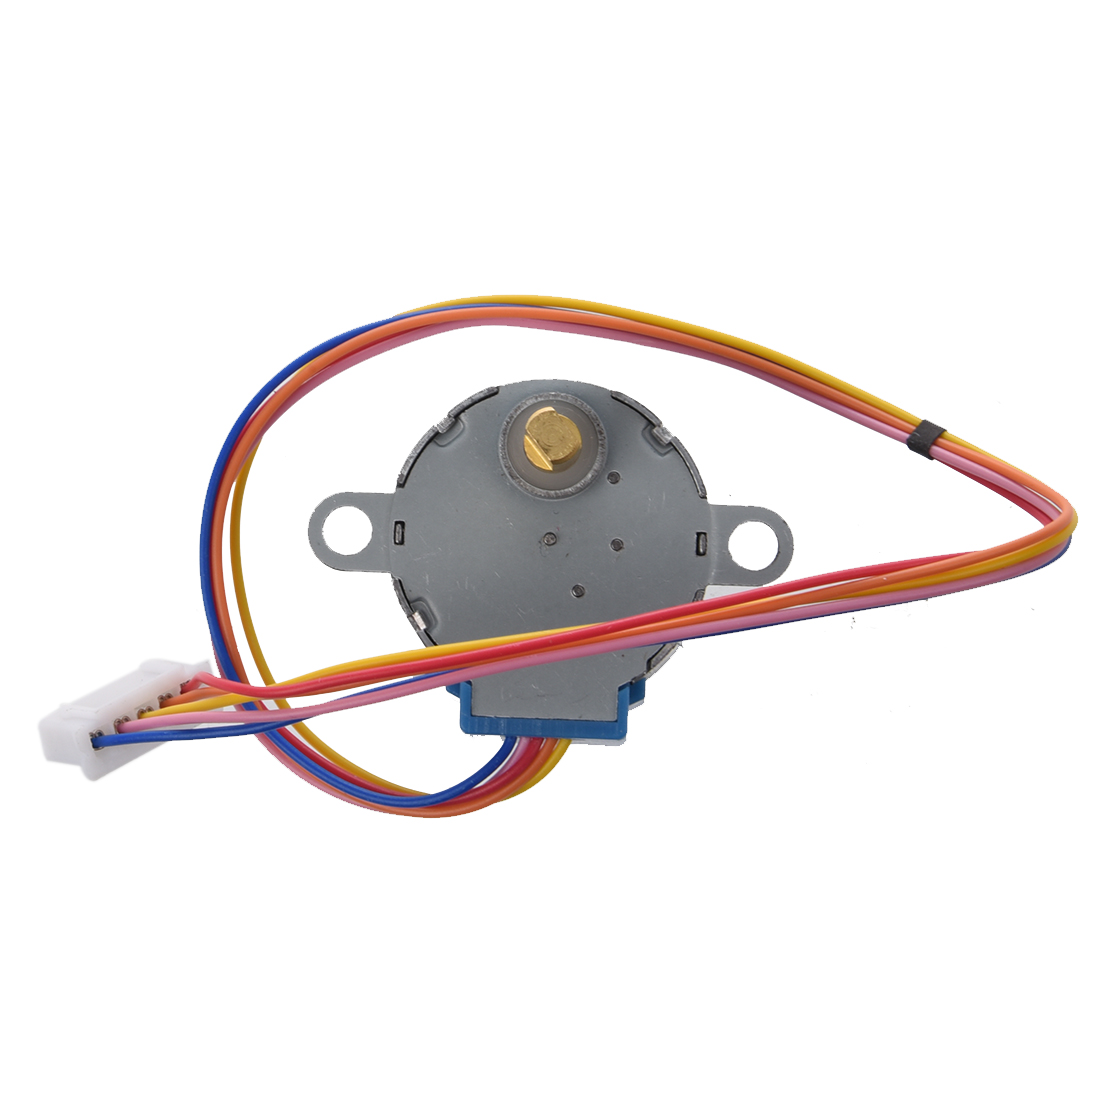 28byj 48 5v 4 phase 5 wire dc 5v gear step stepper motor dt for How to size a stepper motor